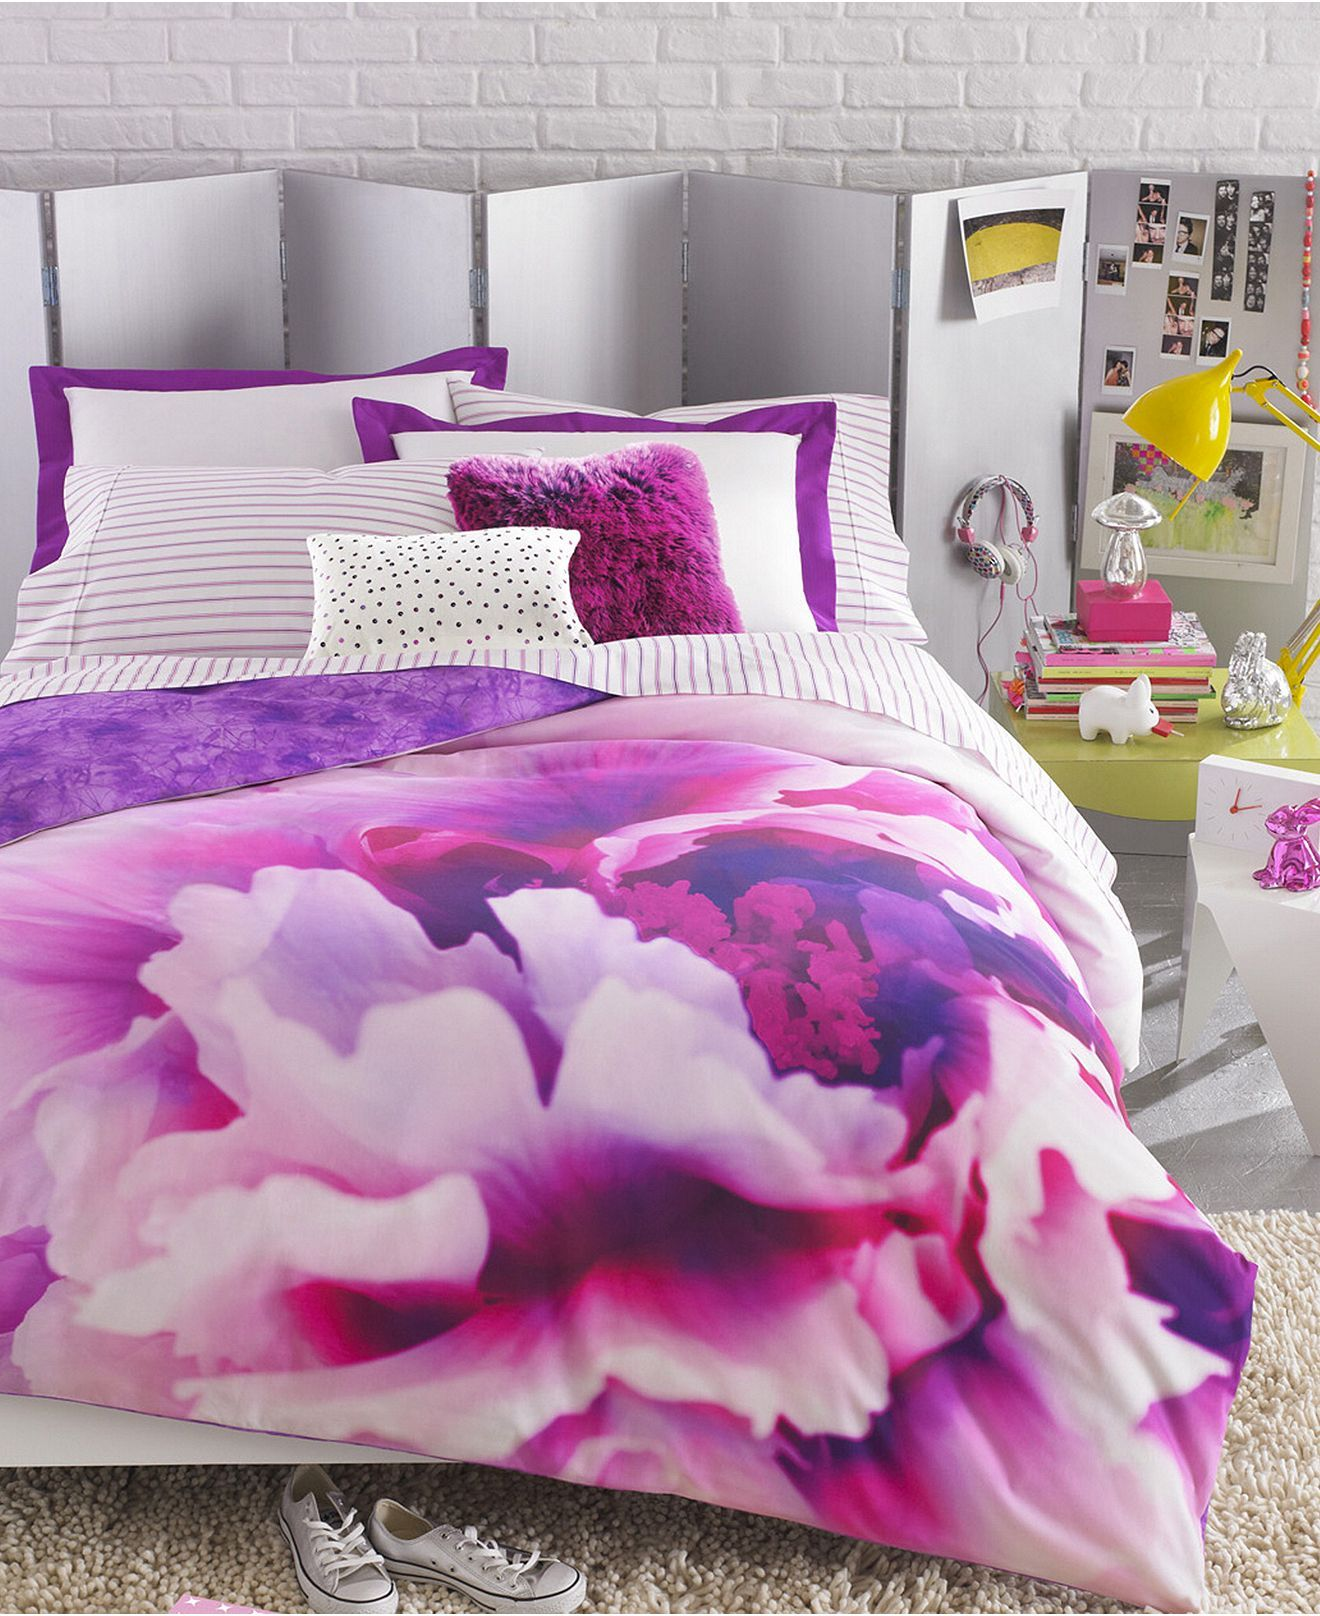 teen vogue bedding violet comforter sets i love it from bedroom to dorm room. Black Bedroom Furniture Sets. Home Design Ideas